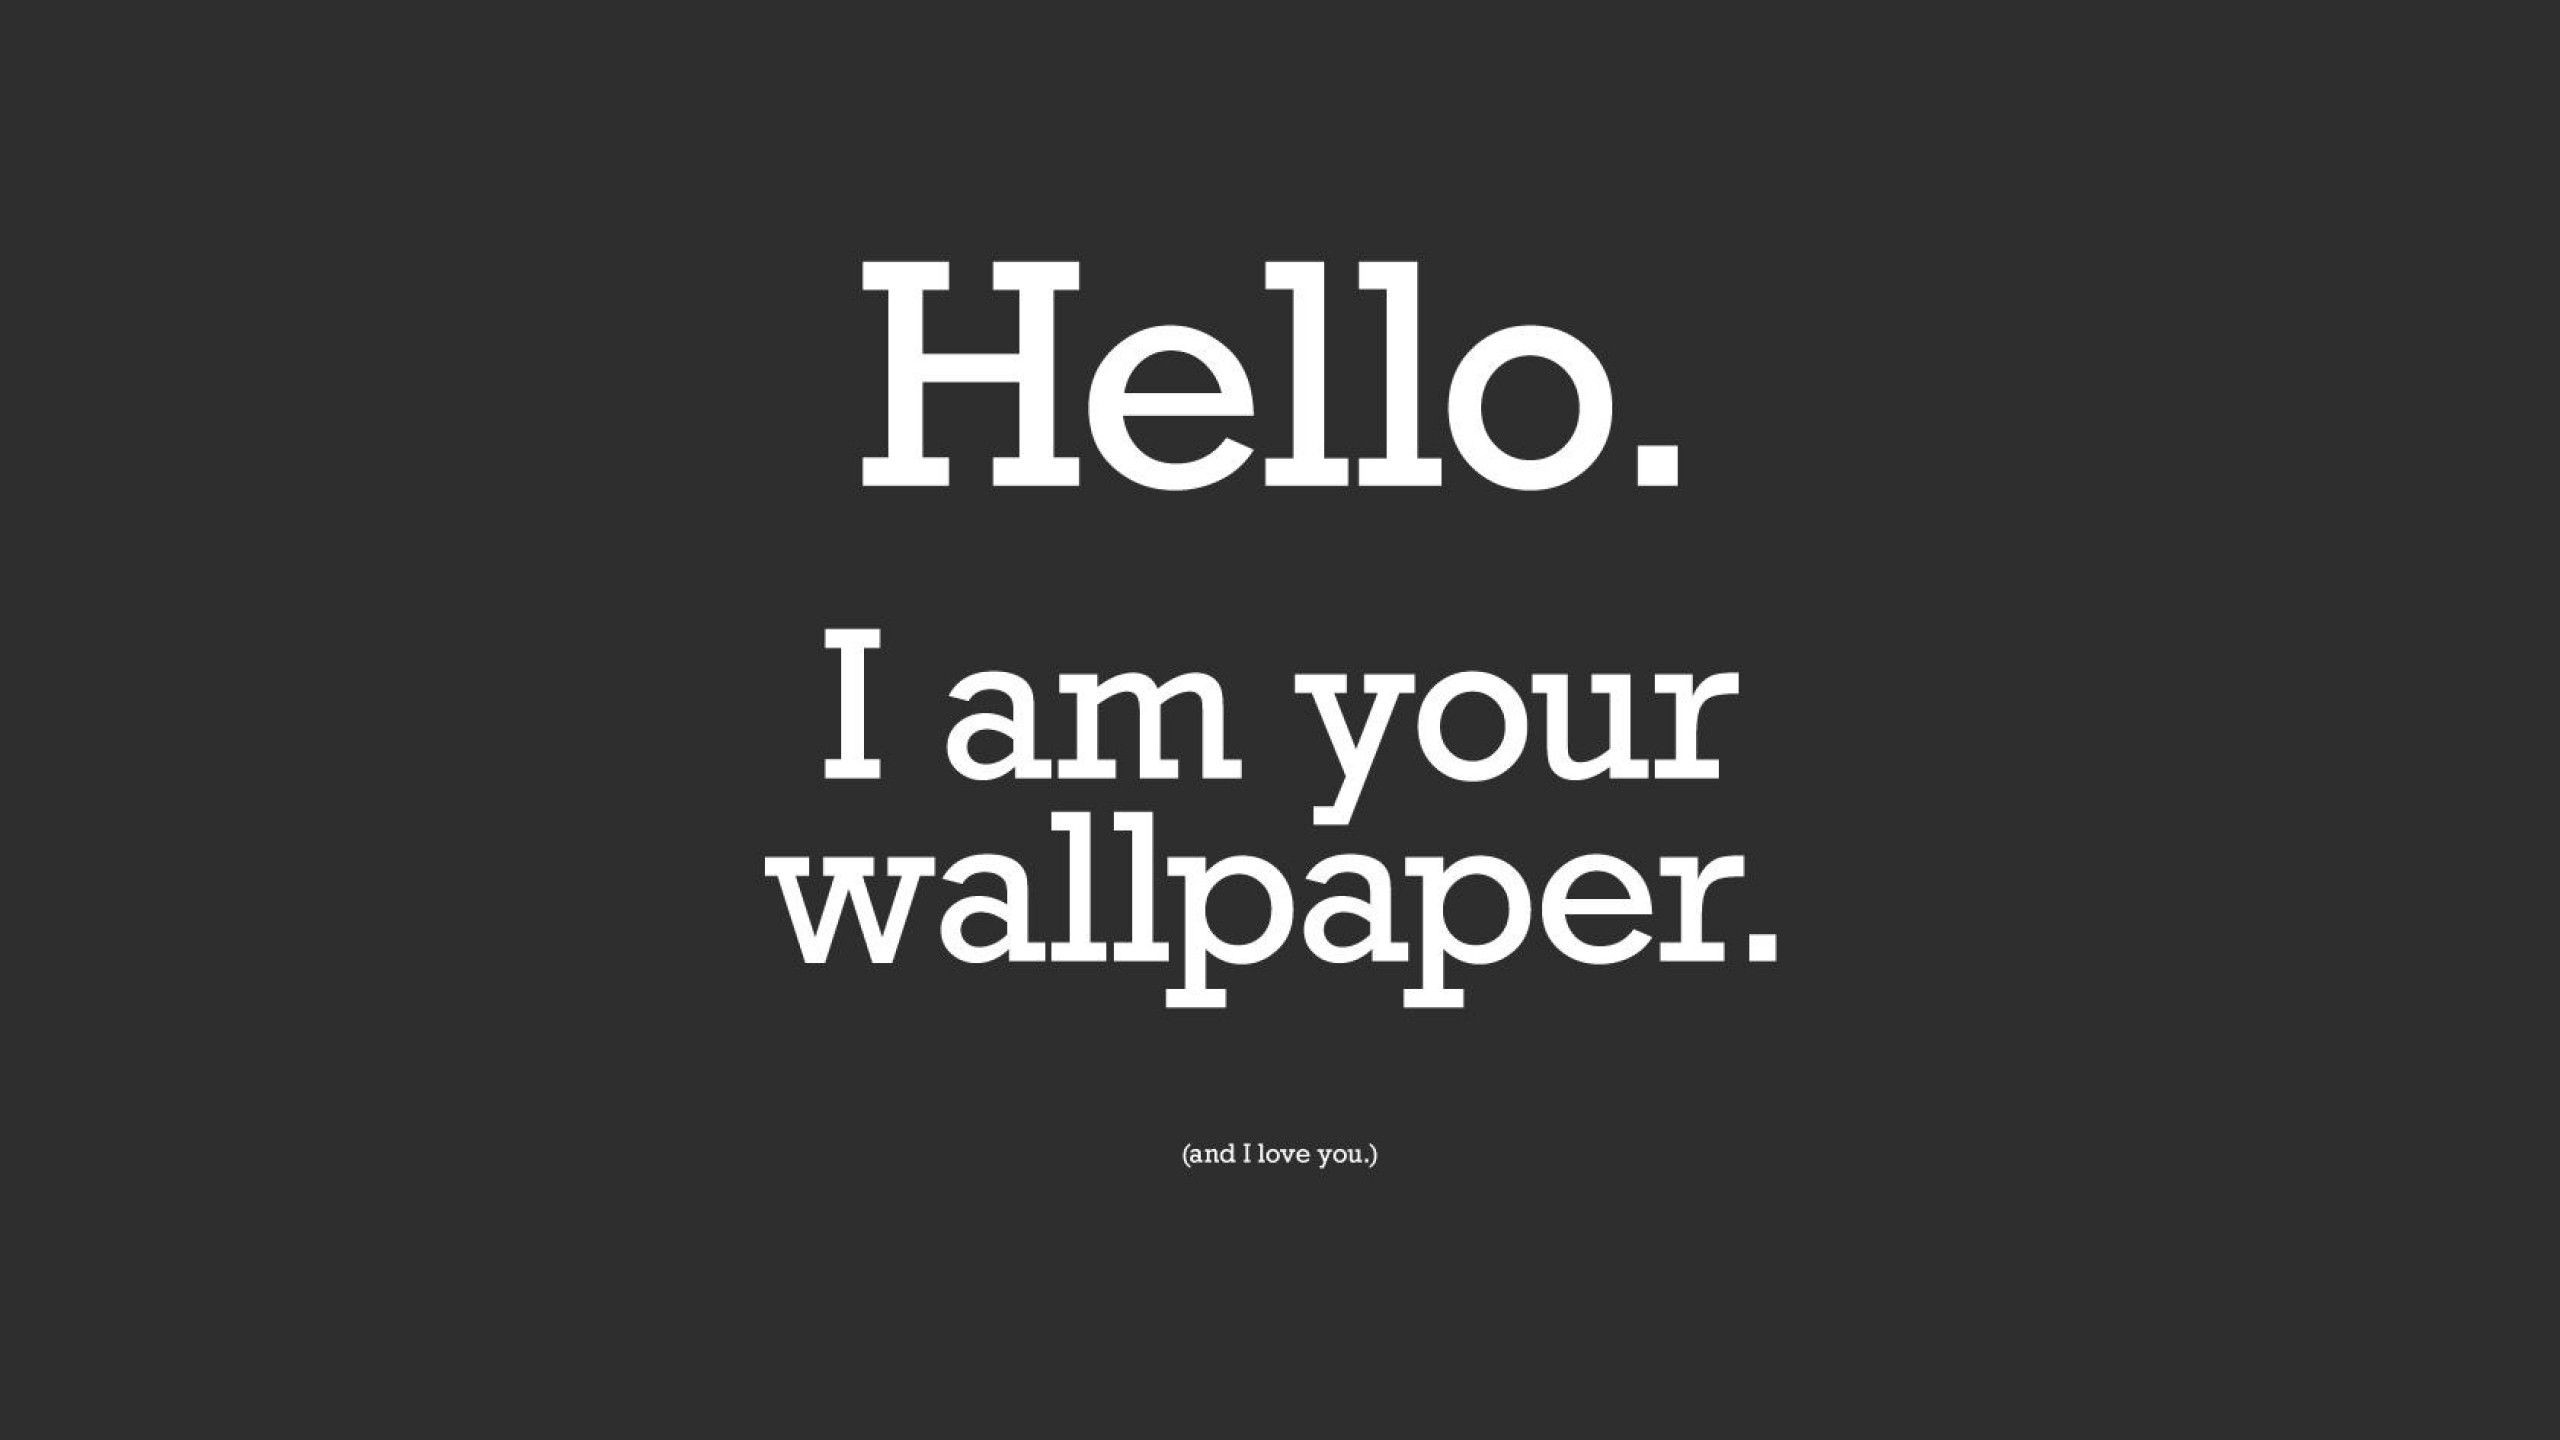 Laptop Wallpapers Quotes For Iphone For Widescreen - Funny Wallpapers Hd - HD Wallpaper